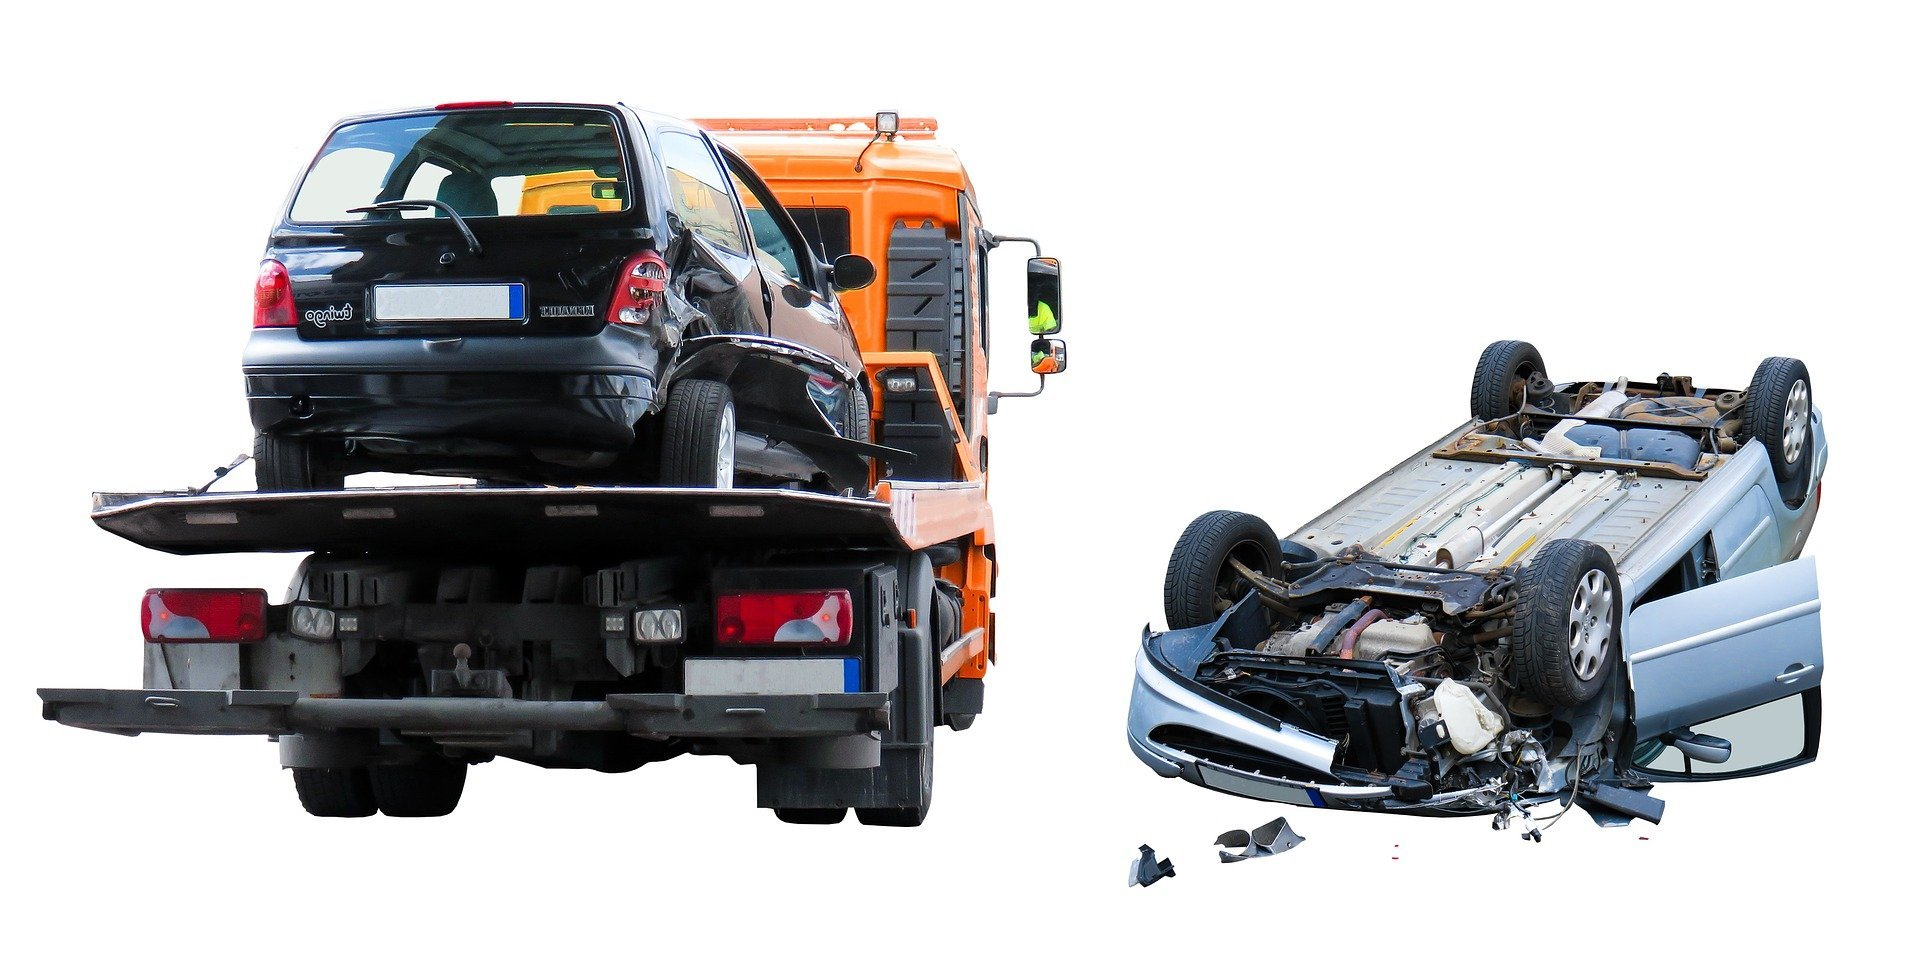 Look For Cash for Cars Services That Offers Free Towing